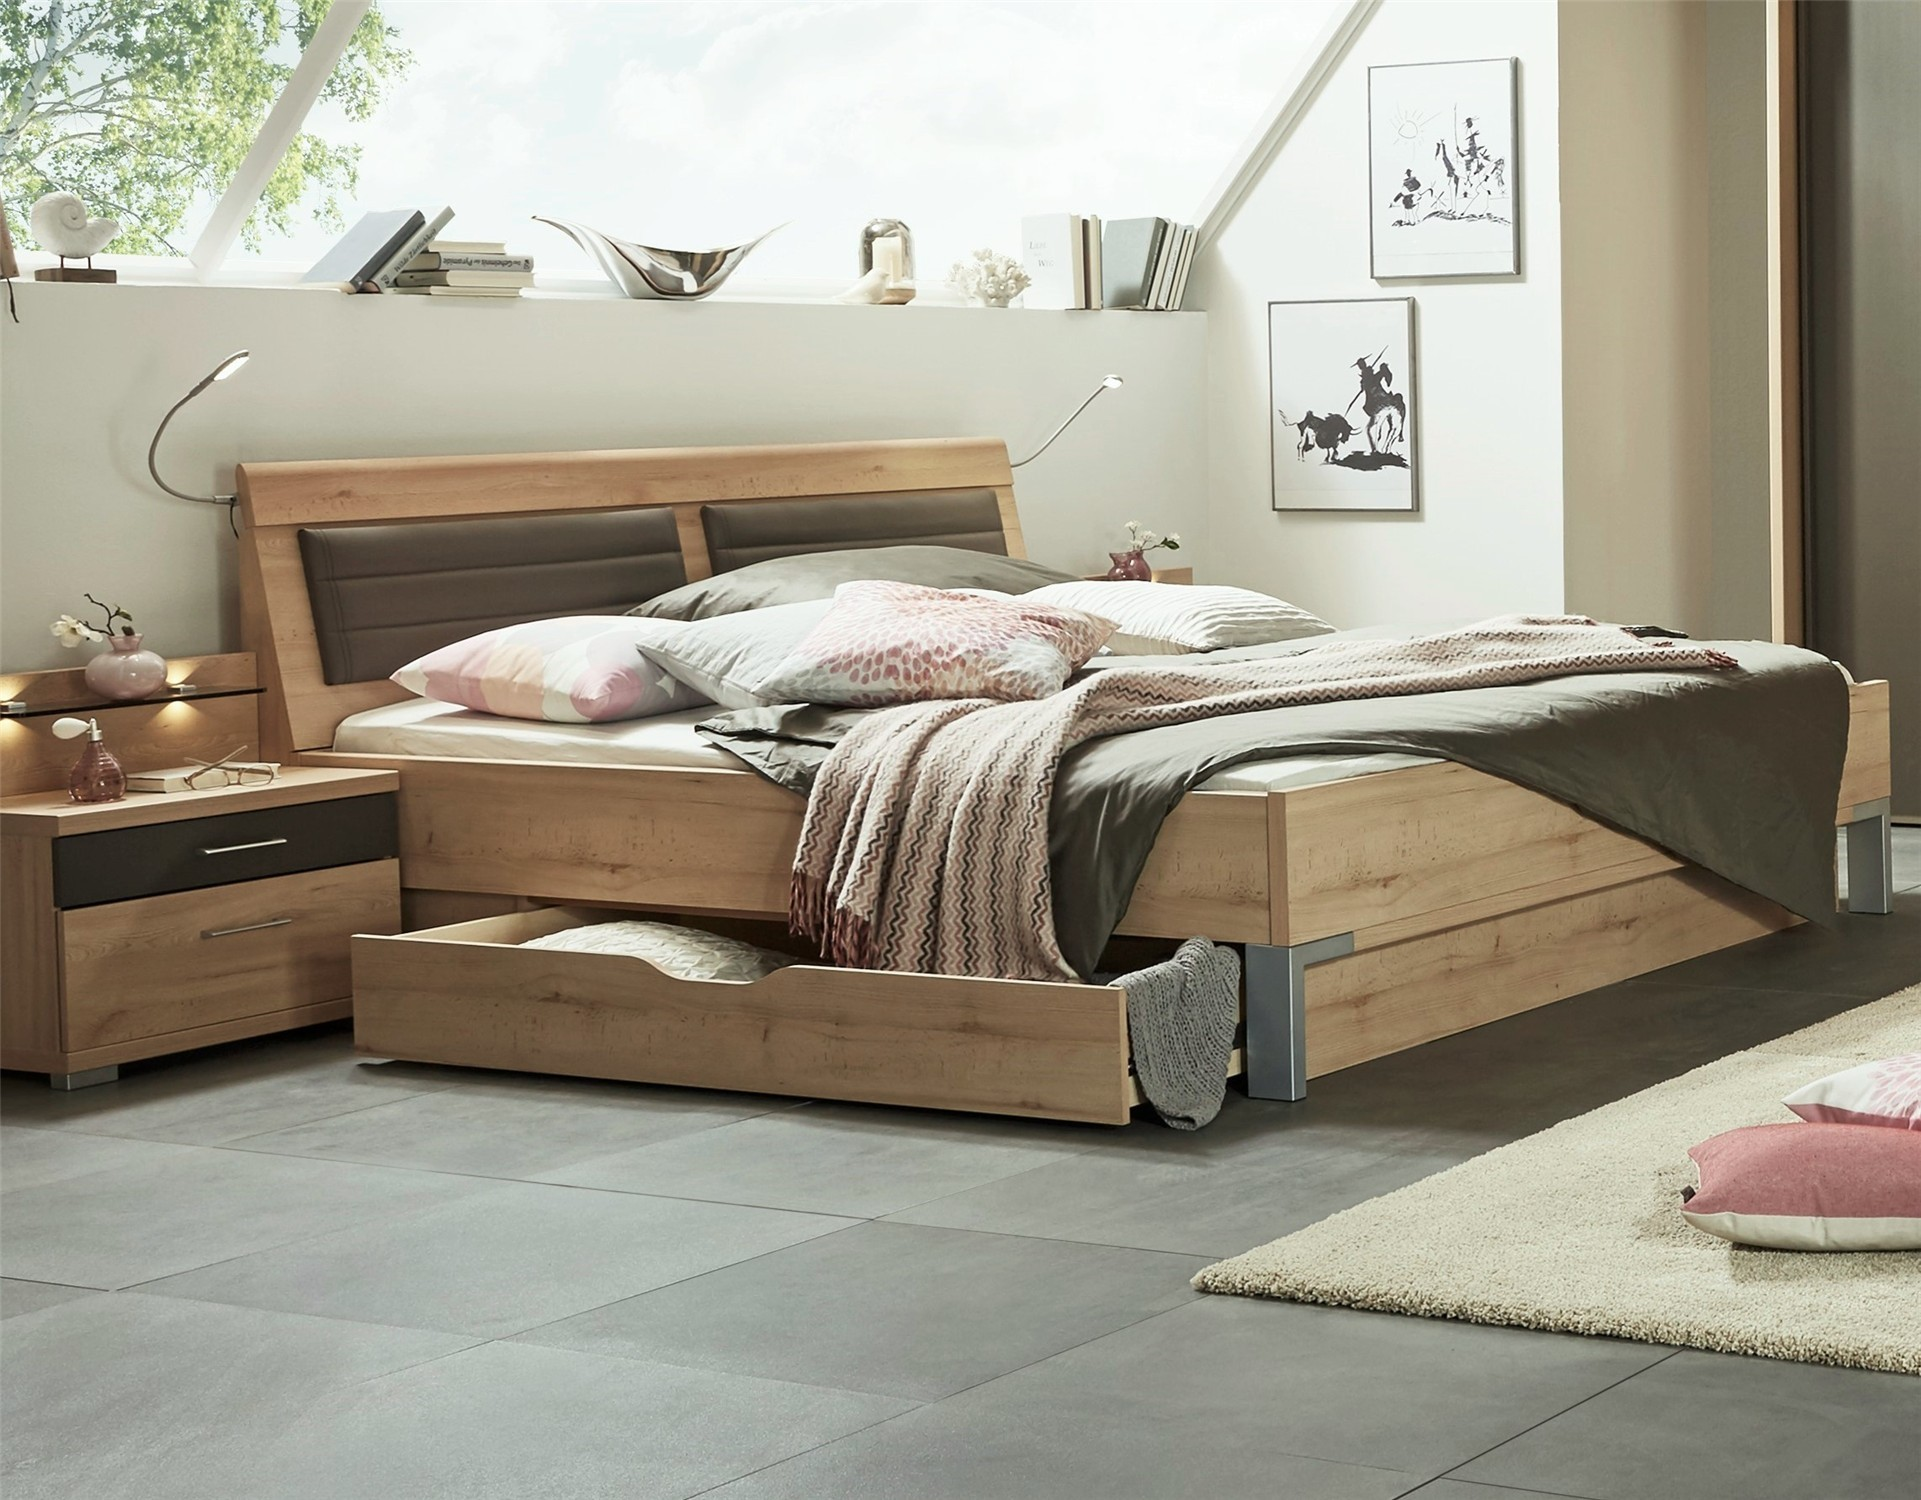 Stylform juno storage bed in bianco beech finish